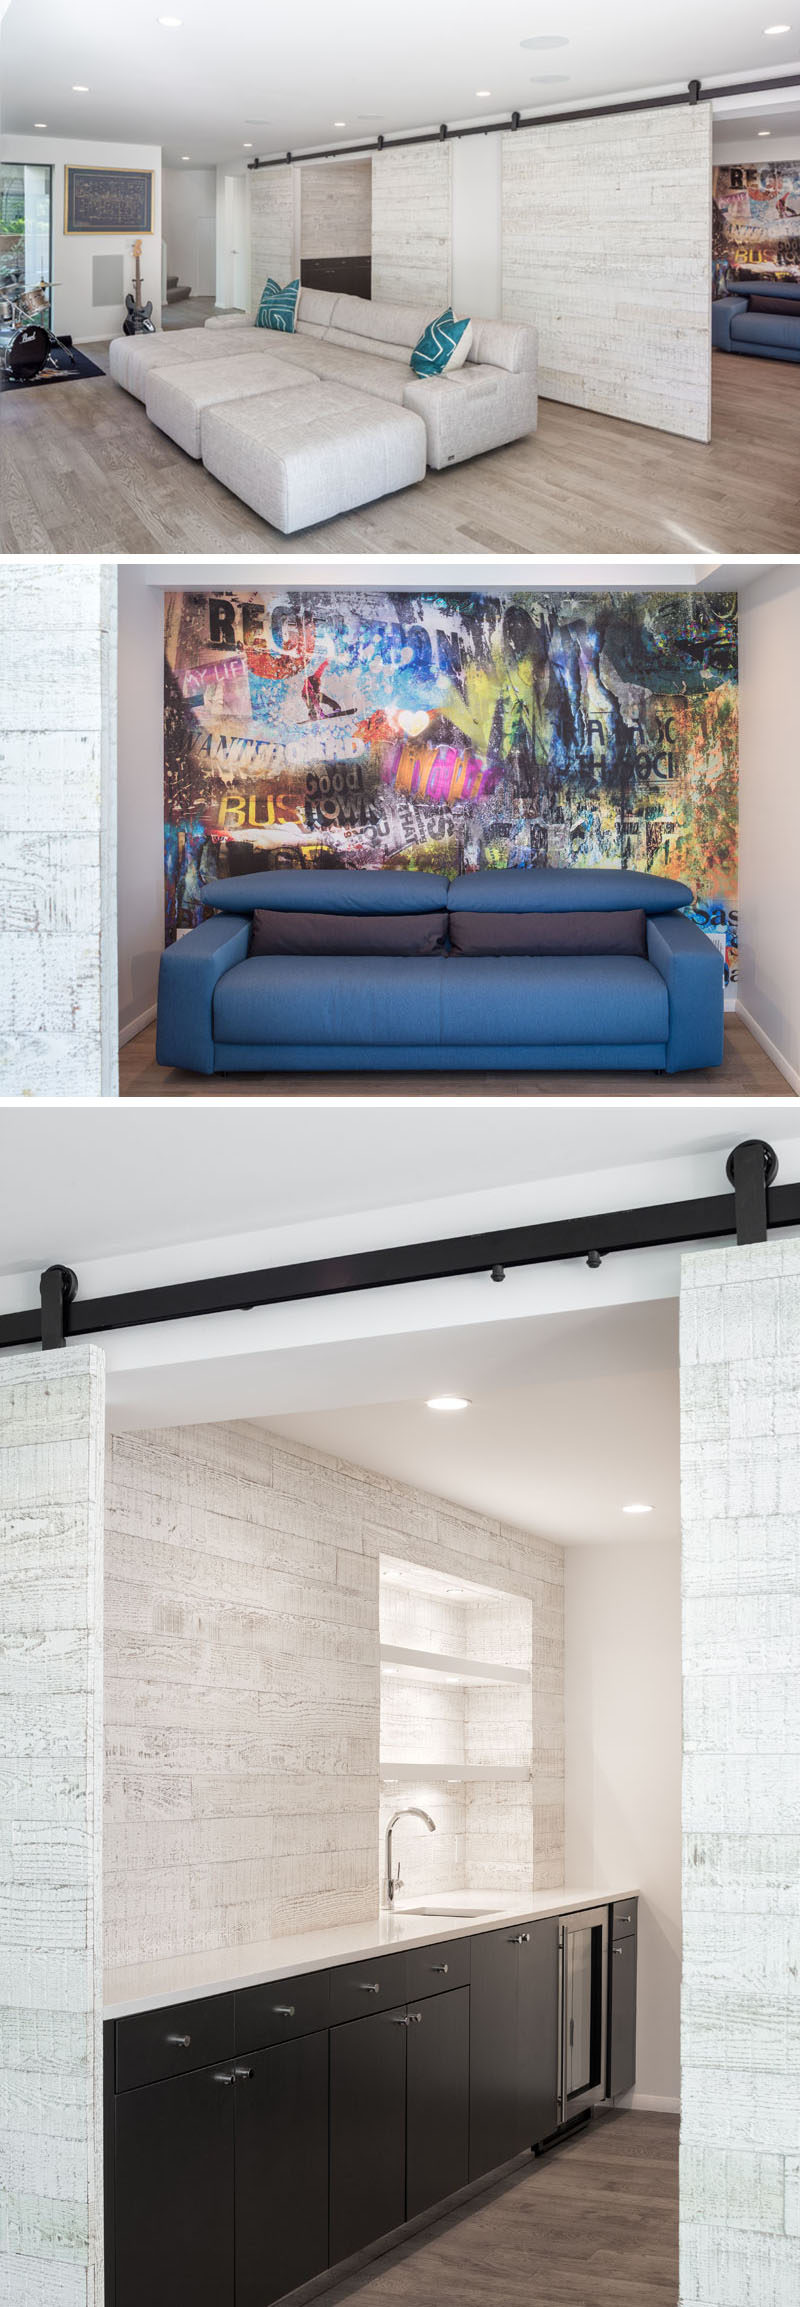 This family room has reclaimed soji wood sliding barn doors that hide a kitchen/bar area and a guest room with a graffiti art wall. #SlidingBarnDoors #GuestRoom #FamilyRoom #Bar